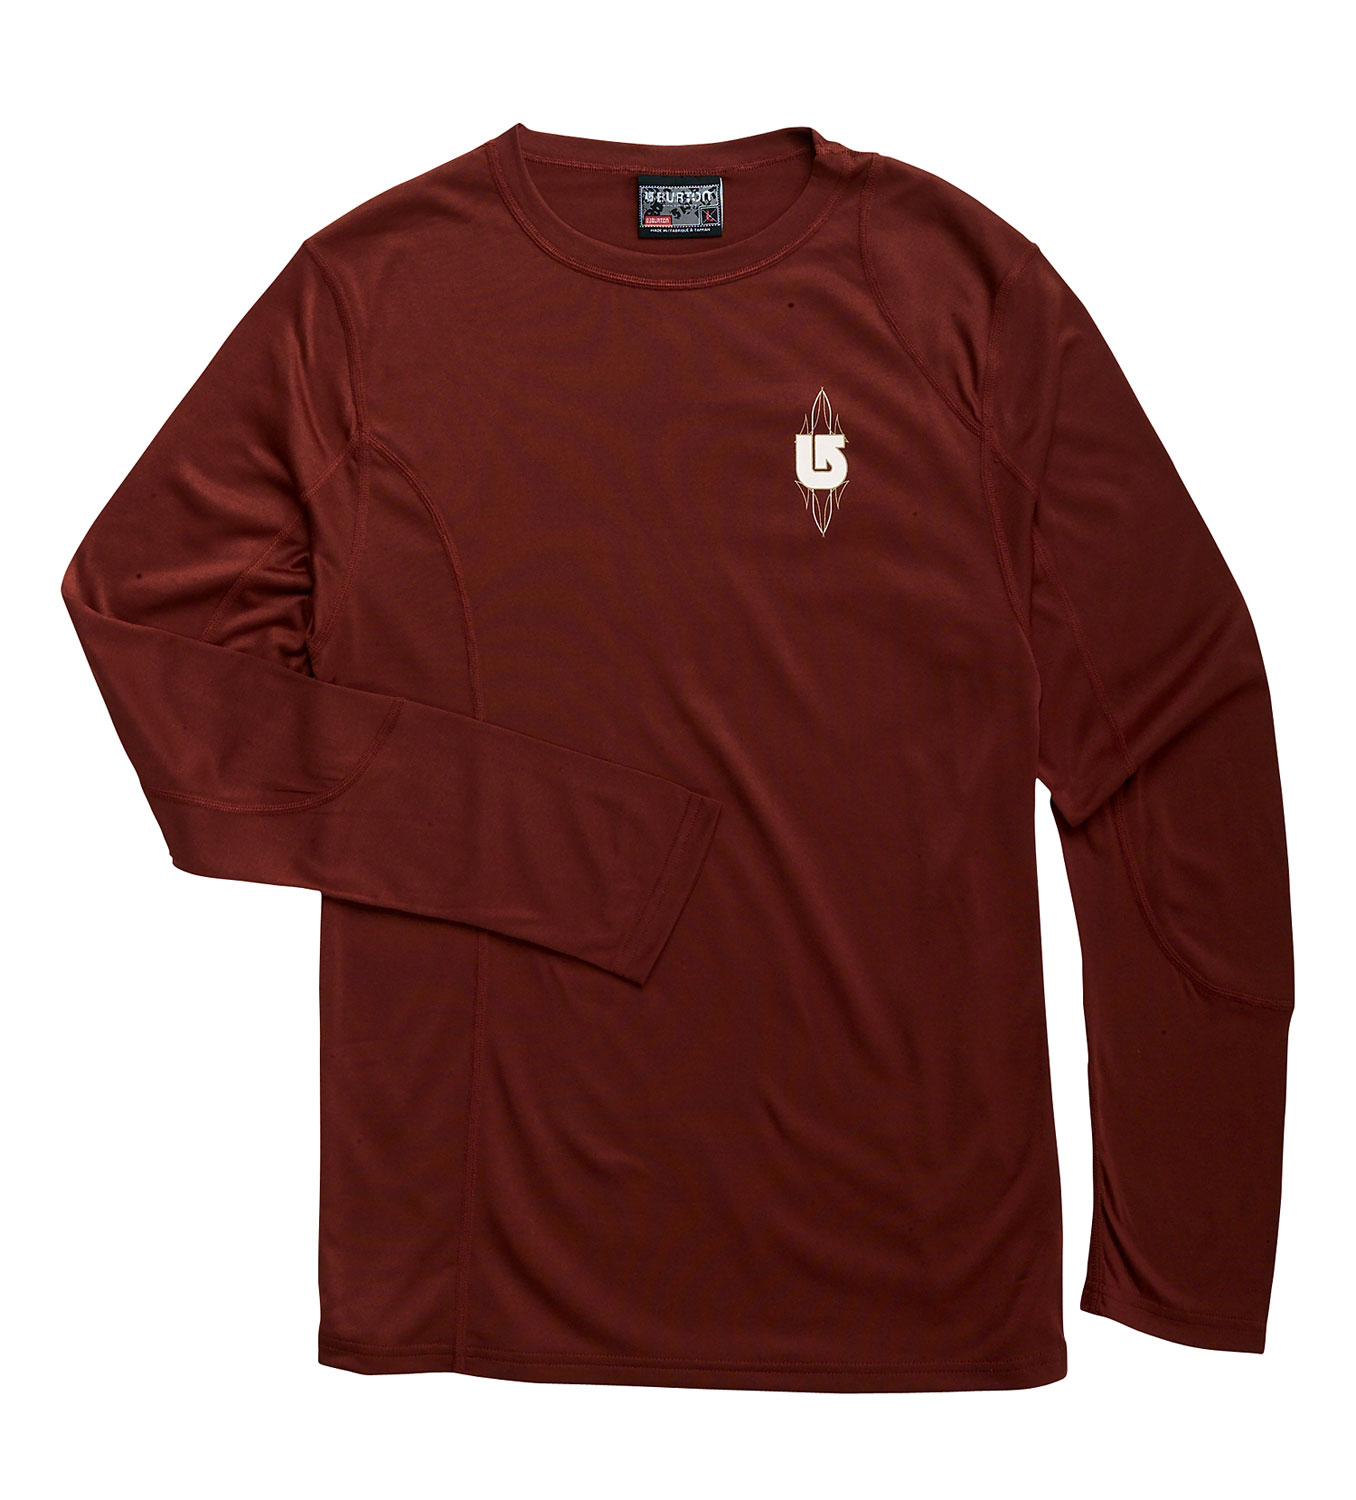 Camp and Hike Key Features of The Burton Tech Jersey: Lightweight Coolmax Jersey Fabric The Ultimate in Moisture Management and Heat Transportation Flatlocked Seams for Comfort Fit Hits Below Hips and Stays Tucked in Layer Under or Over for Ultimate Versatility Ideal for Hiking - $18.46